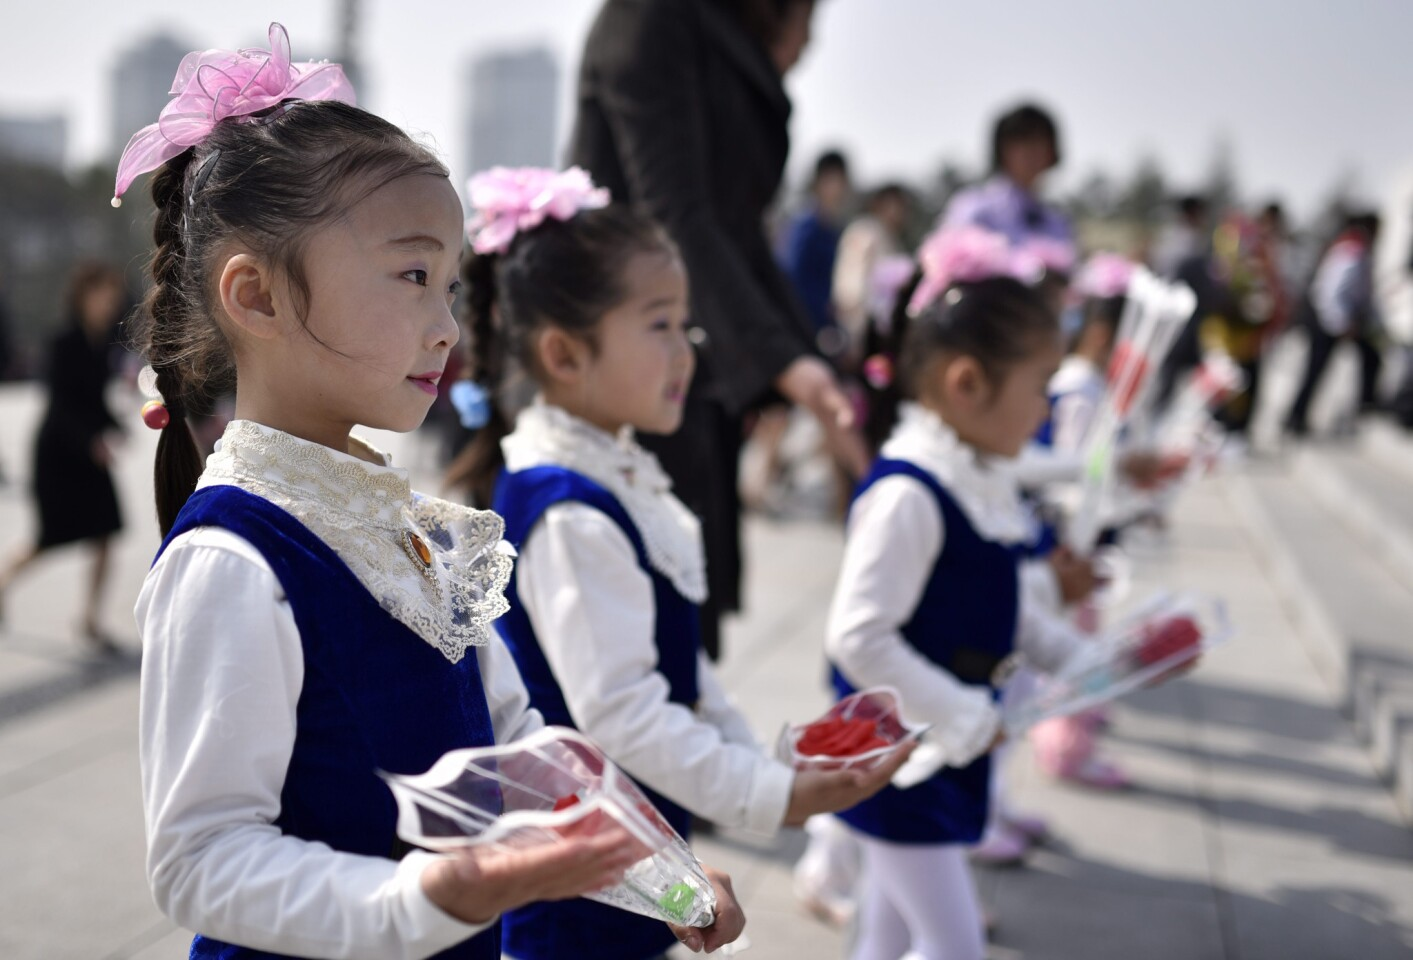 Children hold flowers on their way to pay respect to former leaders Kim Il-sung and Kim Jong-il at Mansu Hill in Pyongyang as North Korea marks the Day of the Sun on April 15.